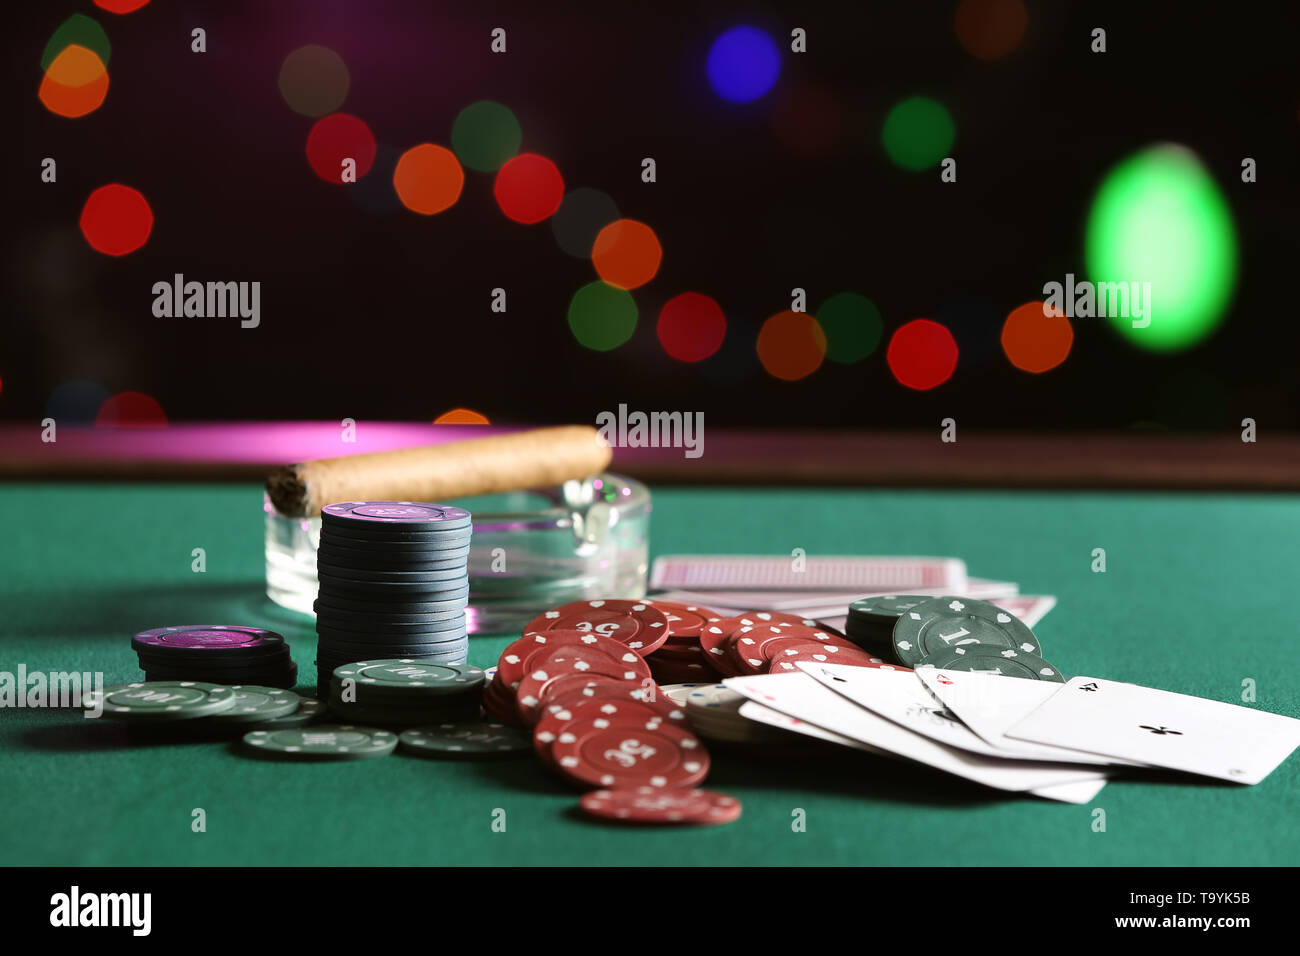 Chips and cards on table in casino - Stock Image